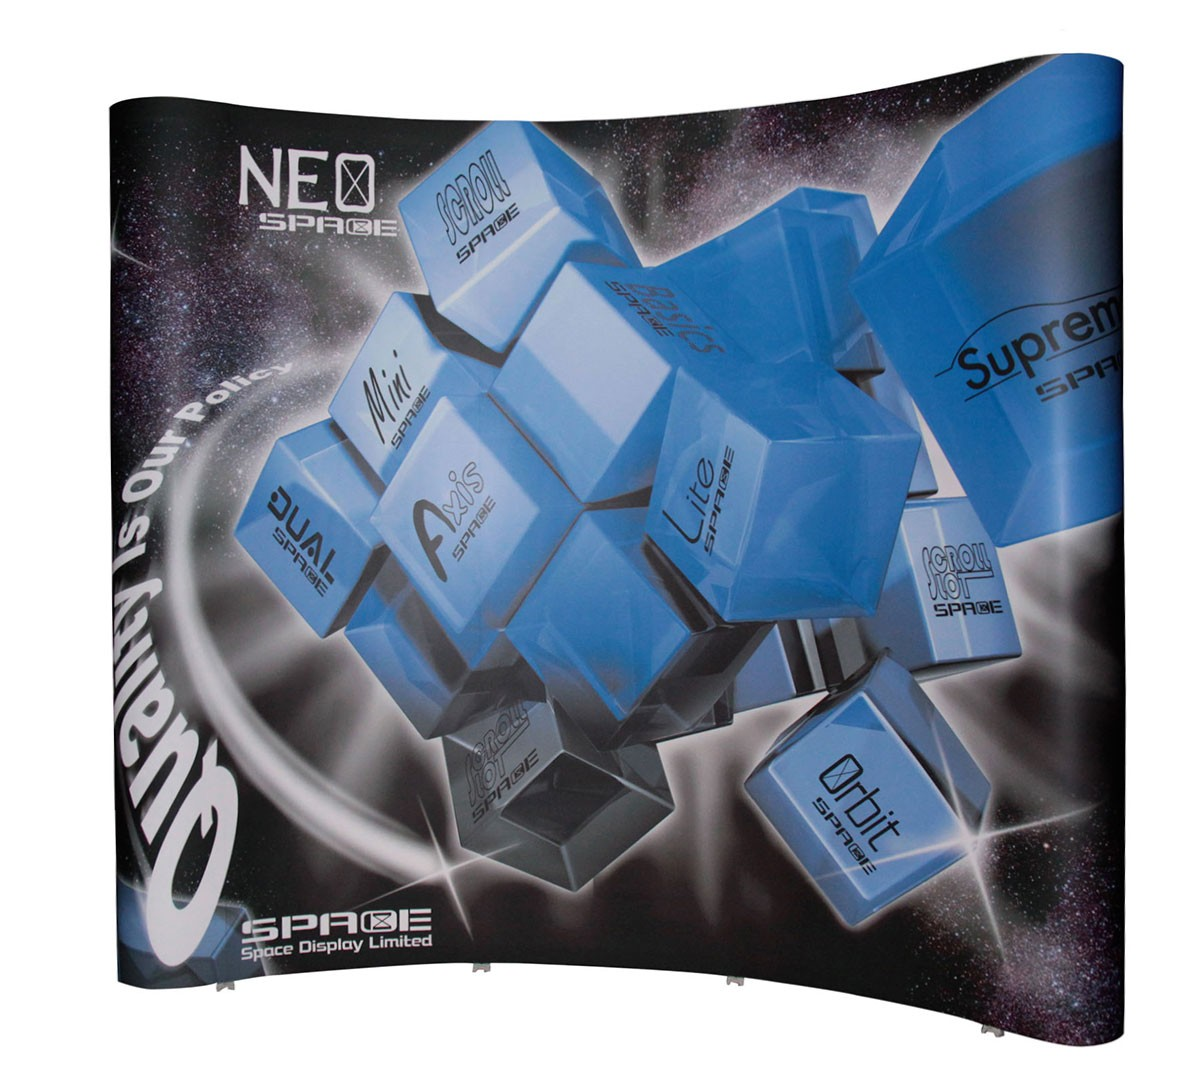 Neo 4x3 10' Curved Wall Pop Up Display